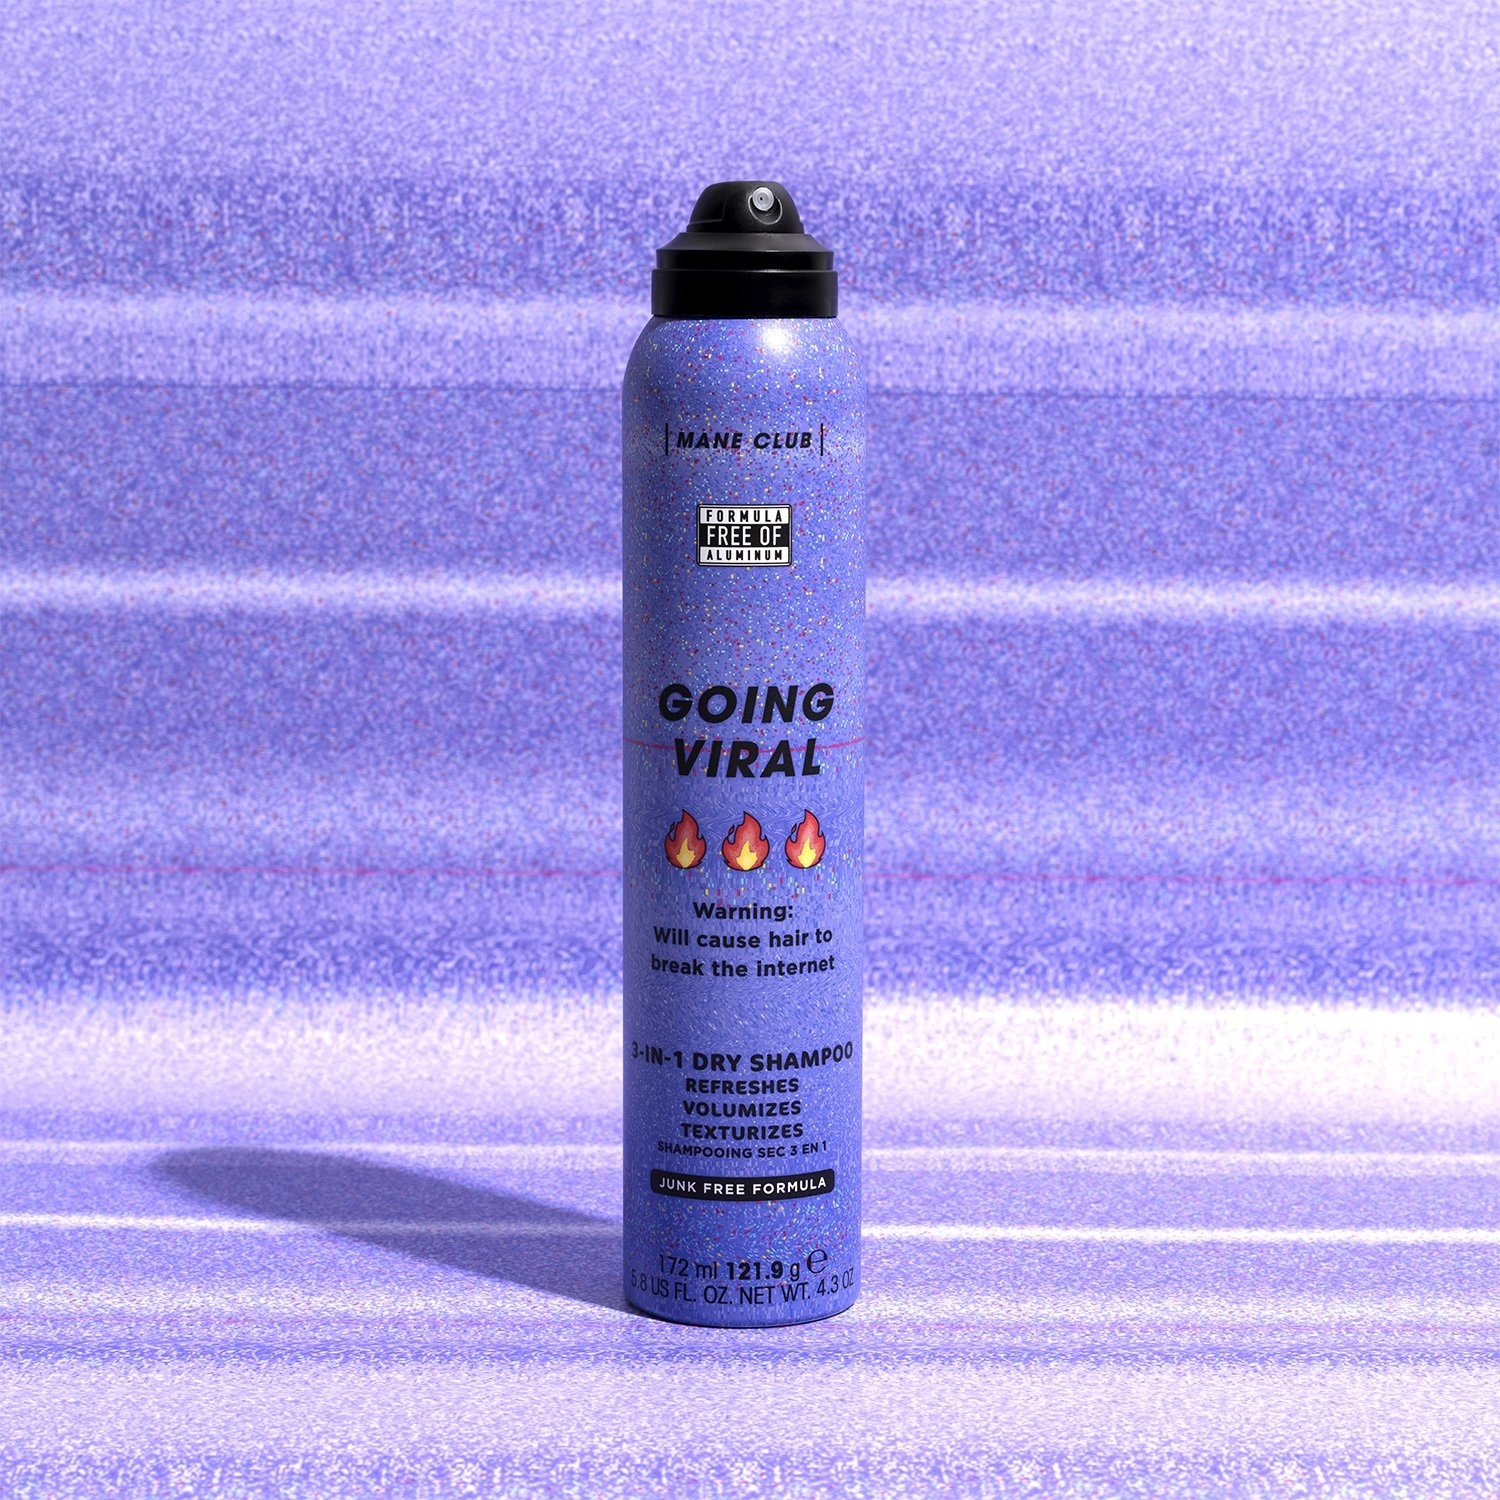 the bottle of dry shampoo